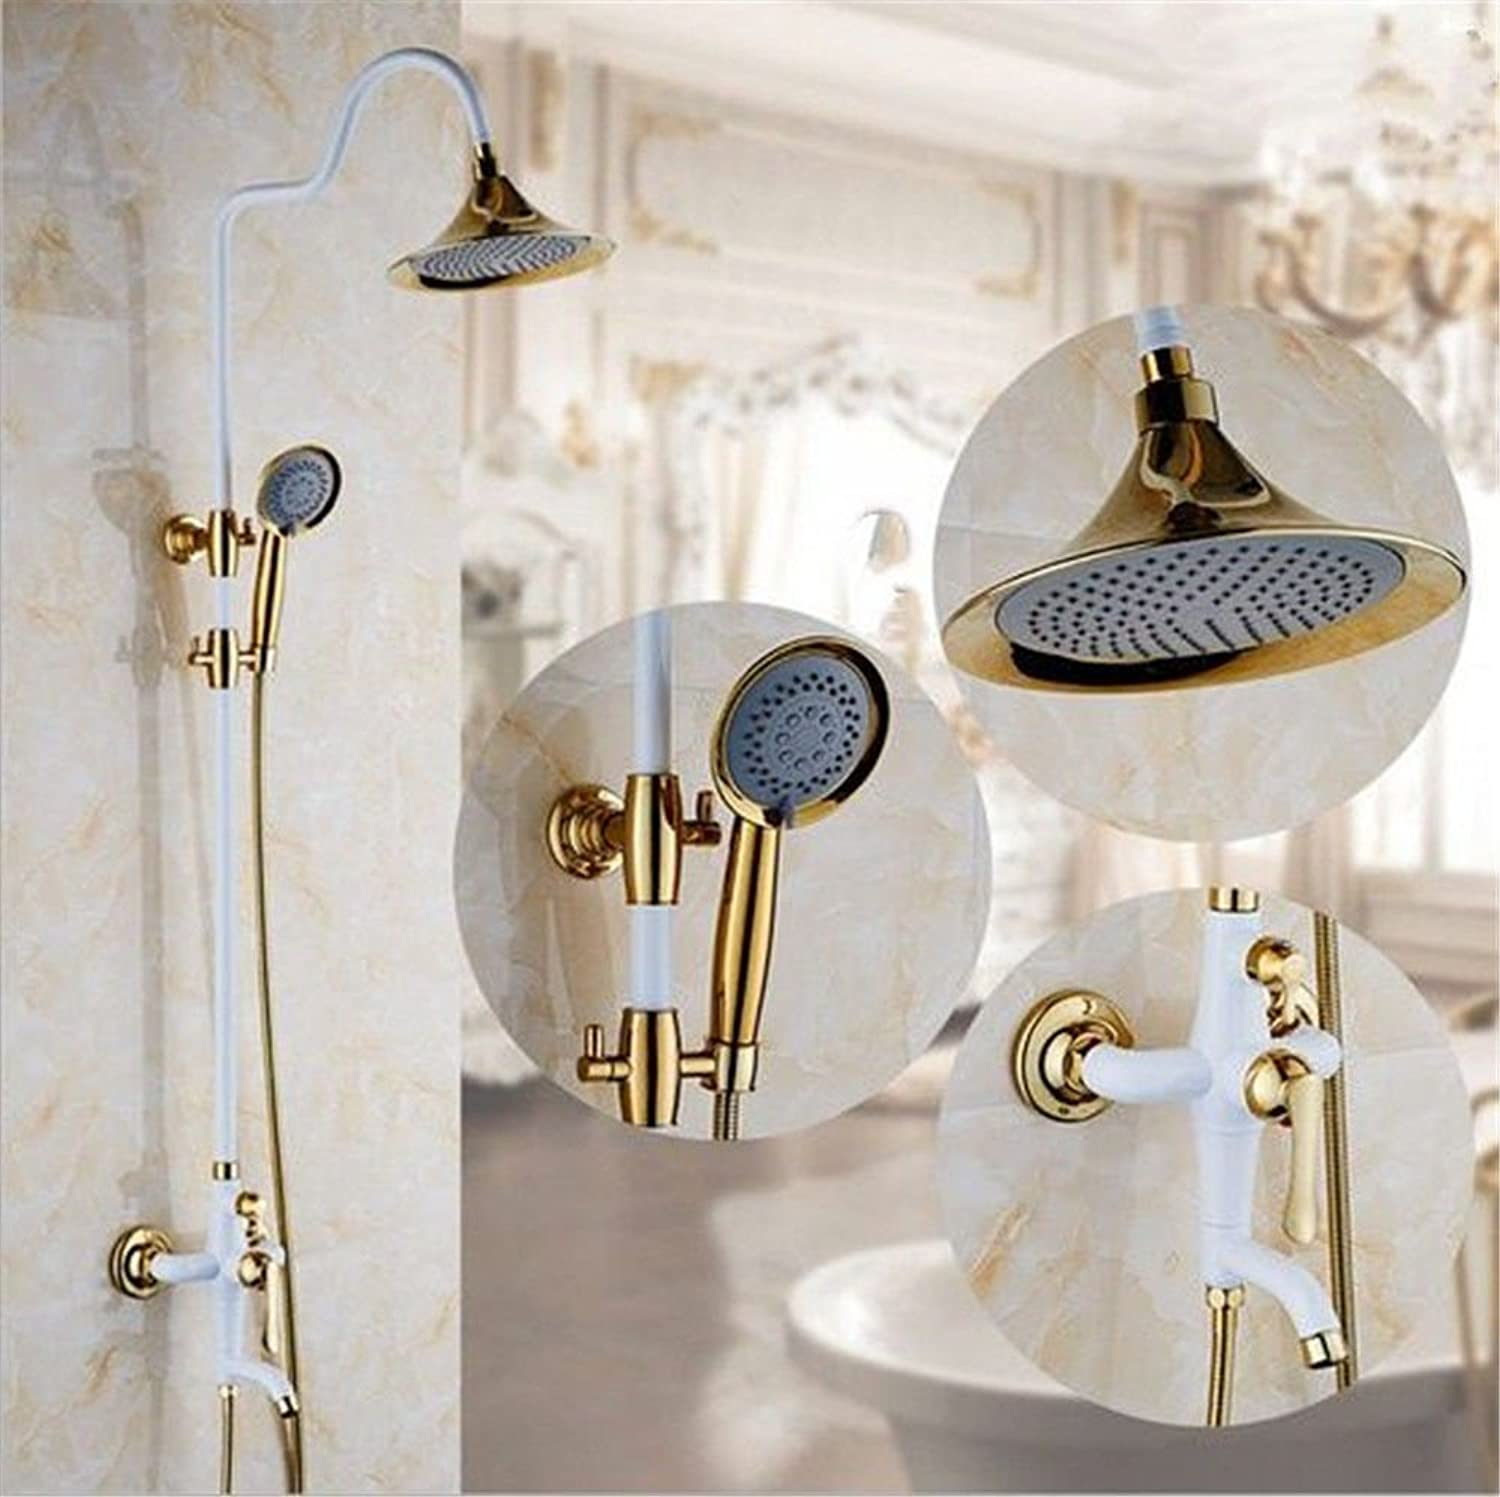 S.Twl.E Sink Mixer Tap Faucet Bathroom Kitchen Basin Tap Leakproof Save Water Shower Shower Set Into Wall Pressure Lifts Sprinklers Full Copper Shower Set